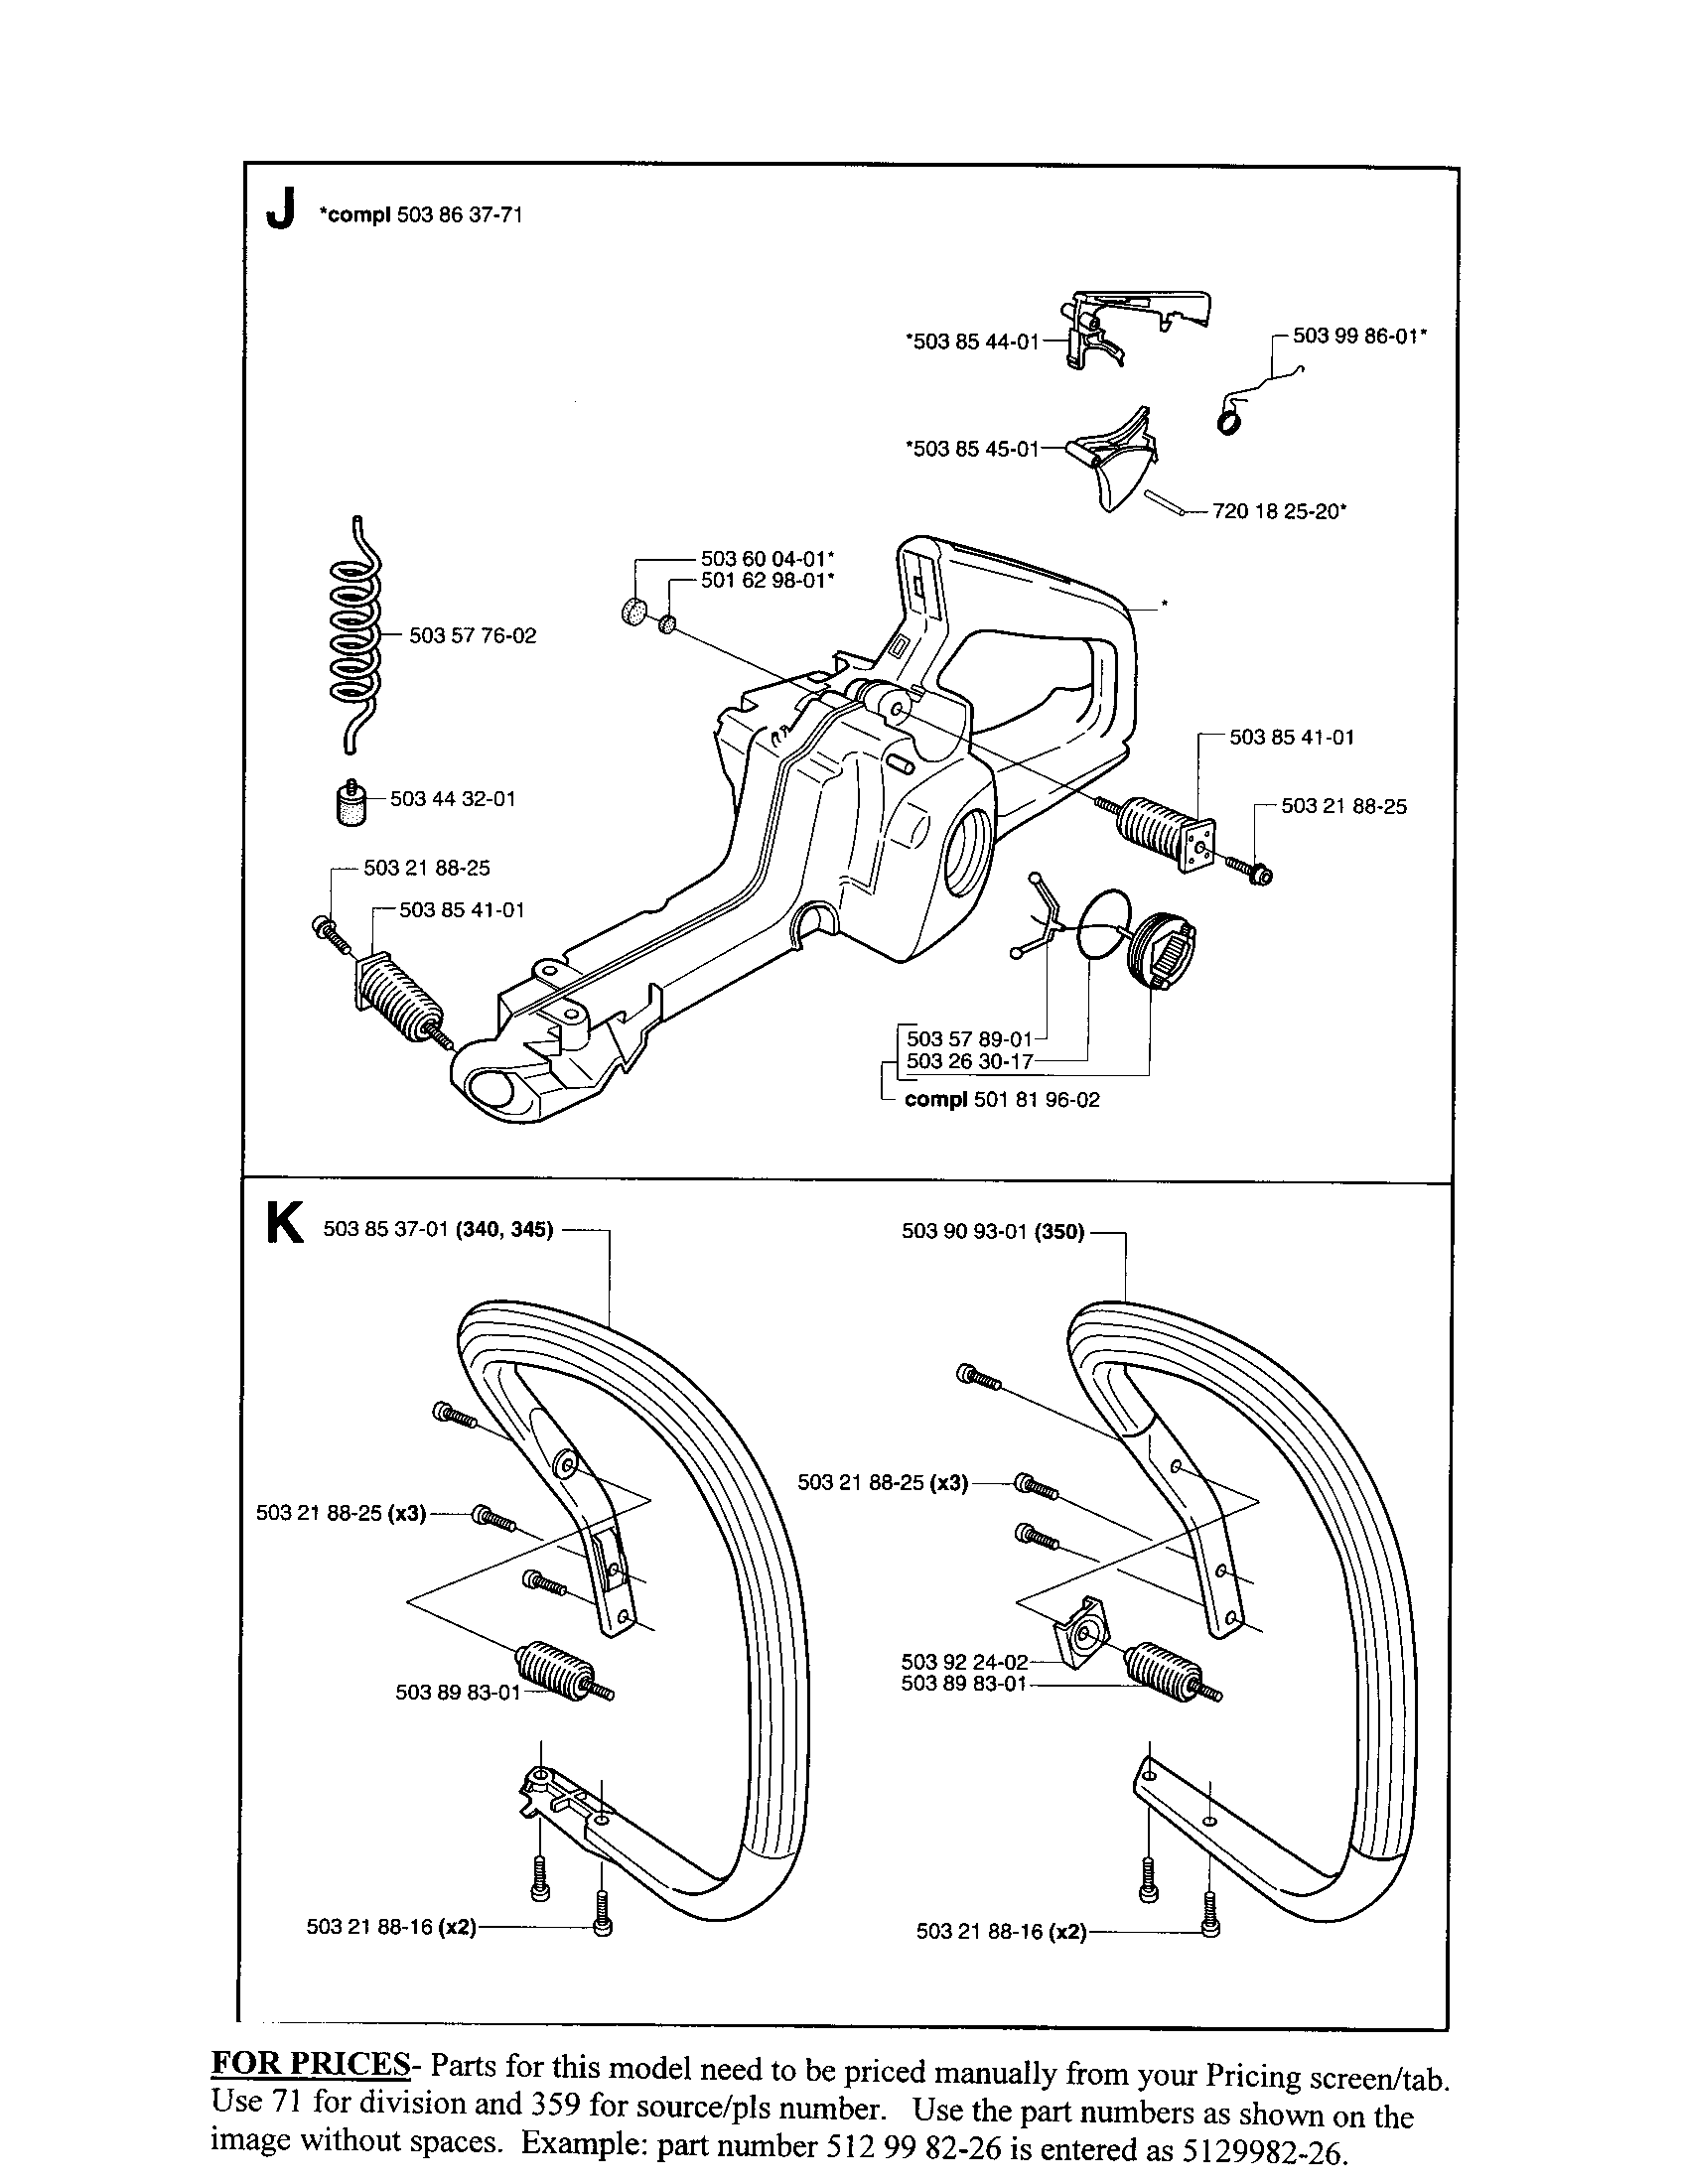 PAGE 5 Diagram & Parts List for Model 340 Husqvarna-Parts